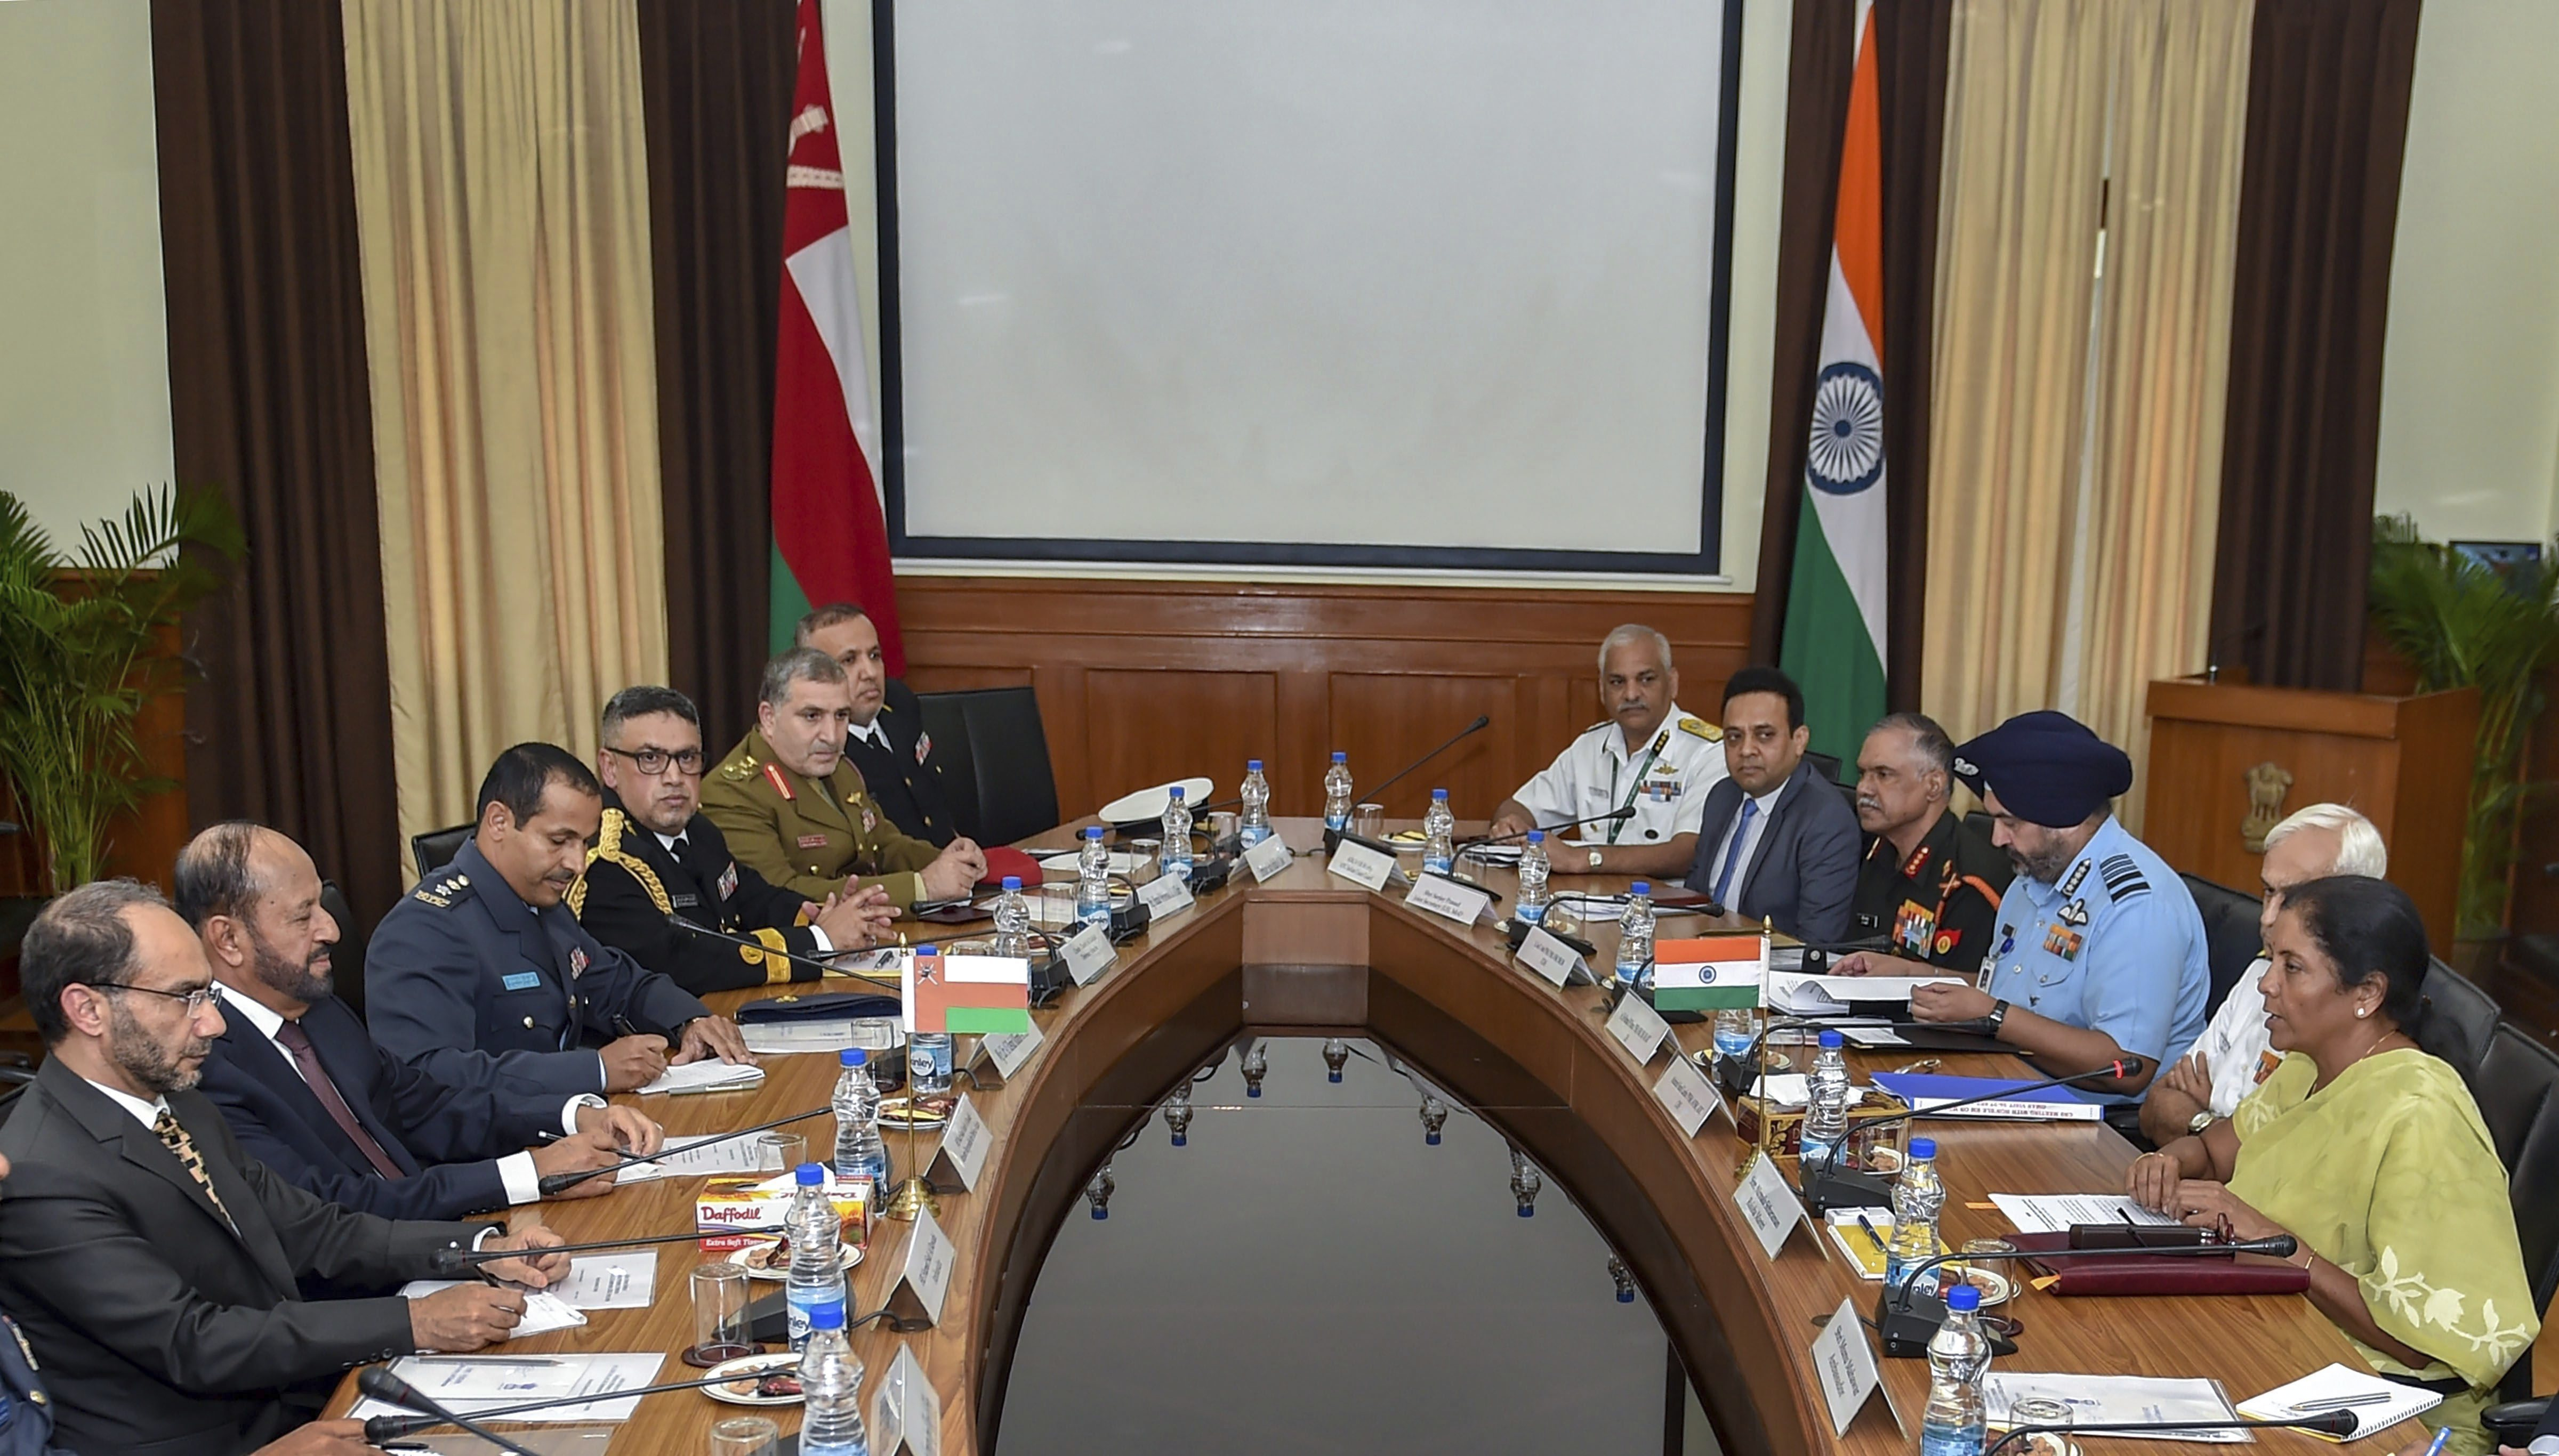 Defence Minister Nirmala Sitharaman with Indian Navy chief Admiral Lanba and IAF chief Air Chief Marshal BS Dhanoa during delegation level talks with Oman's Defence Minister Badr bin Saud al-Busaidi (second L) at South Block in New Delhi - PTI